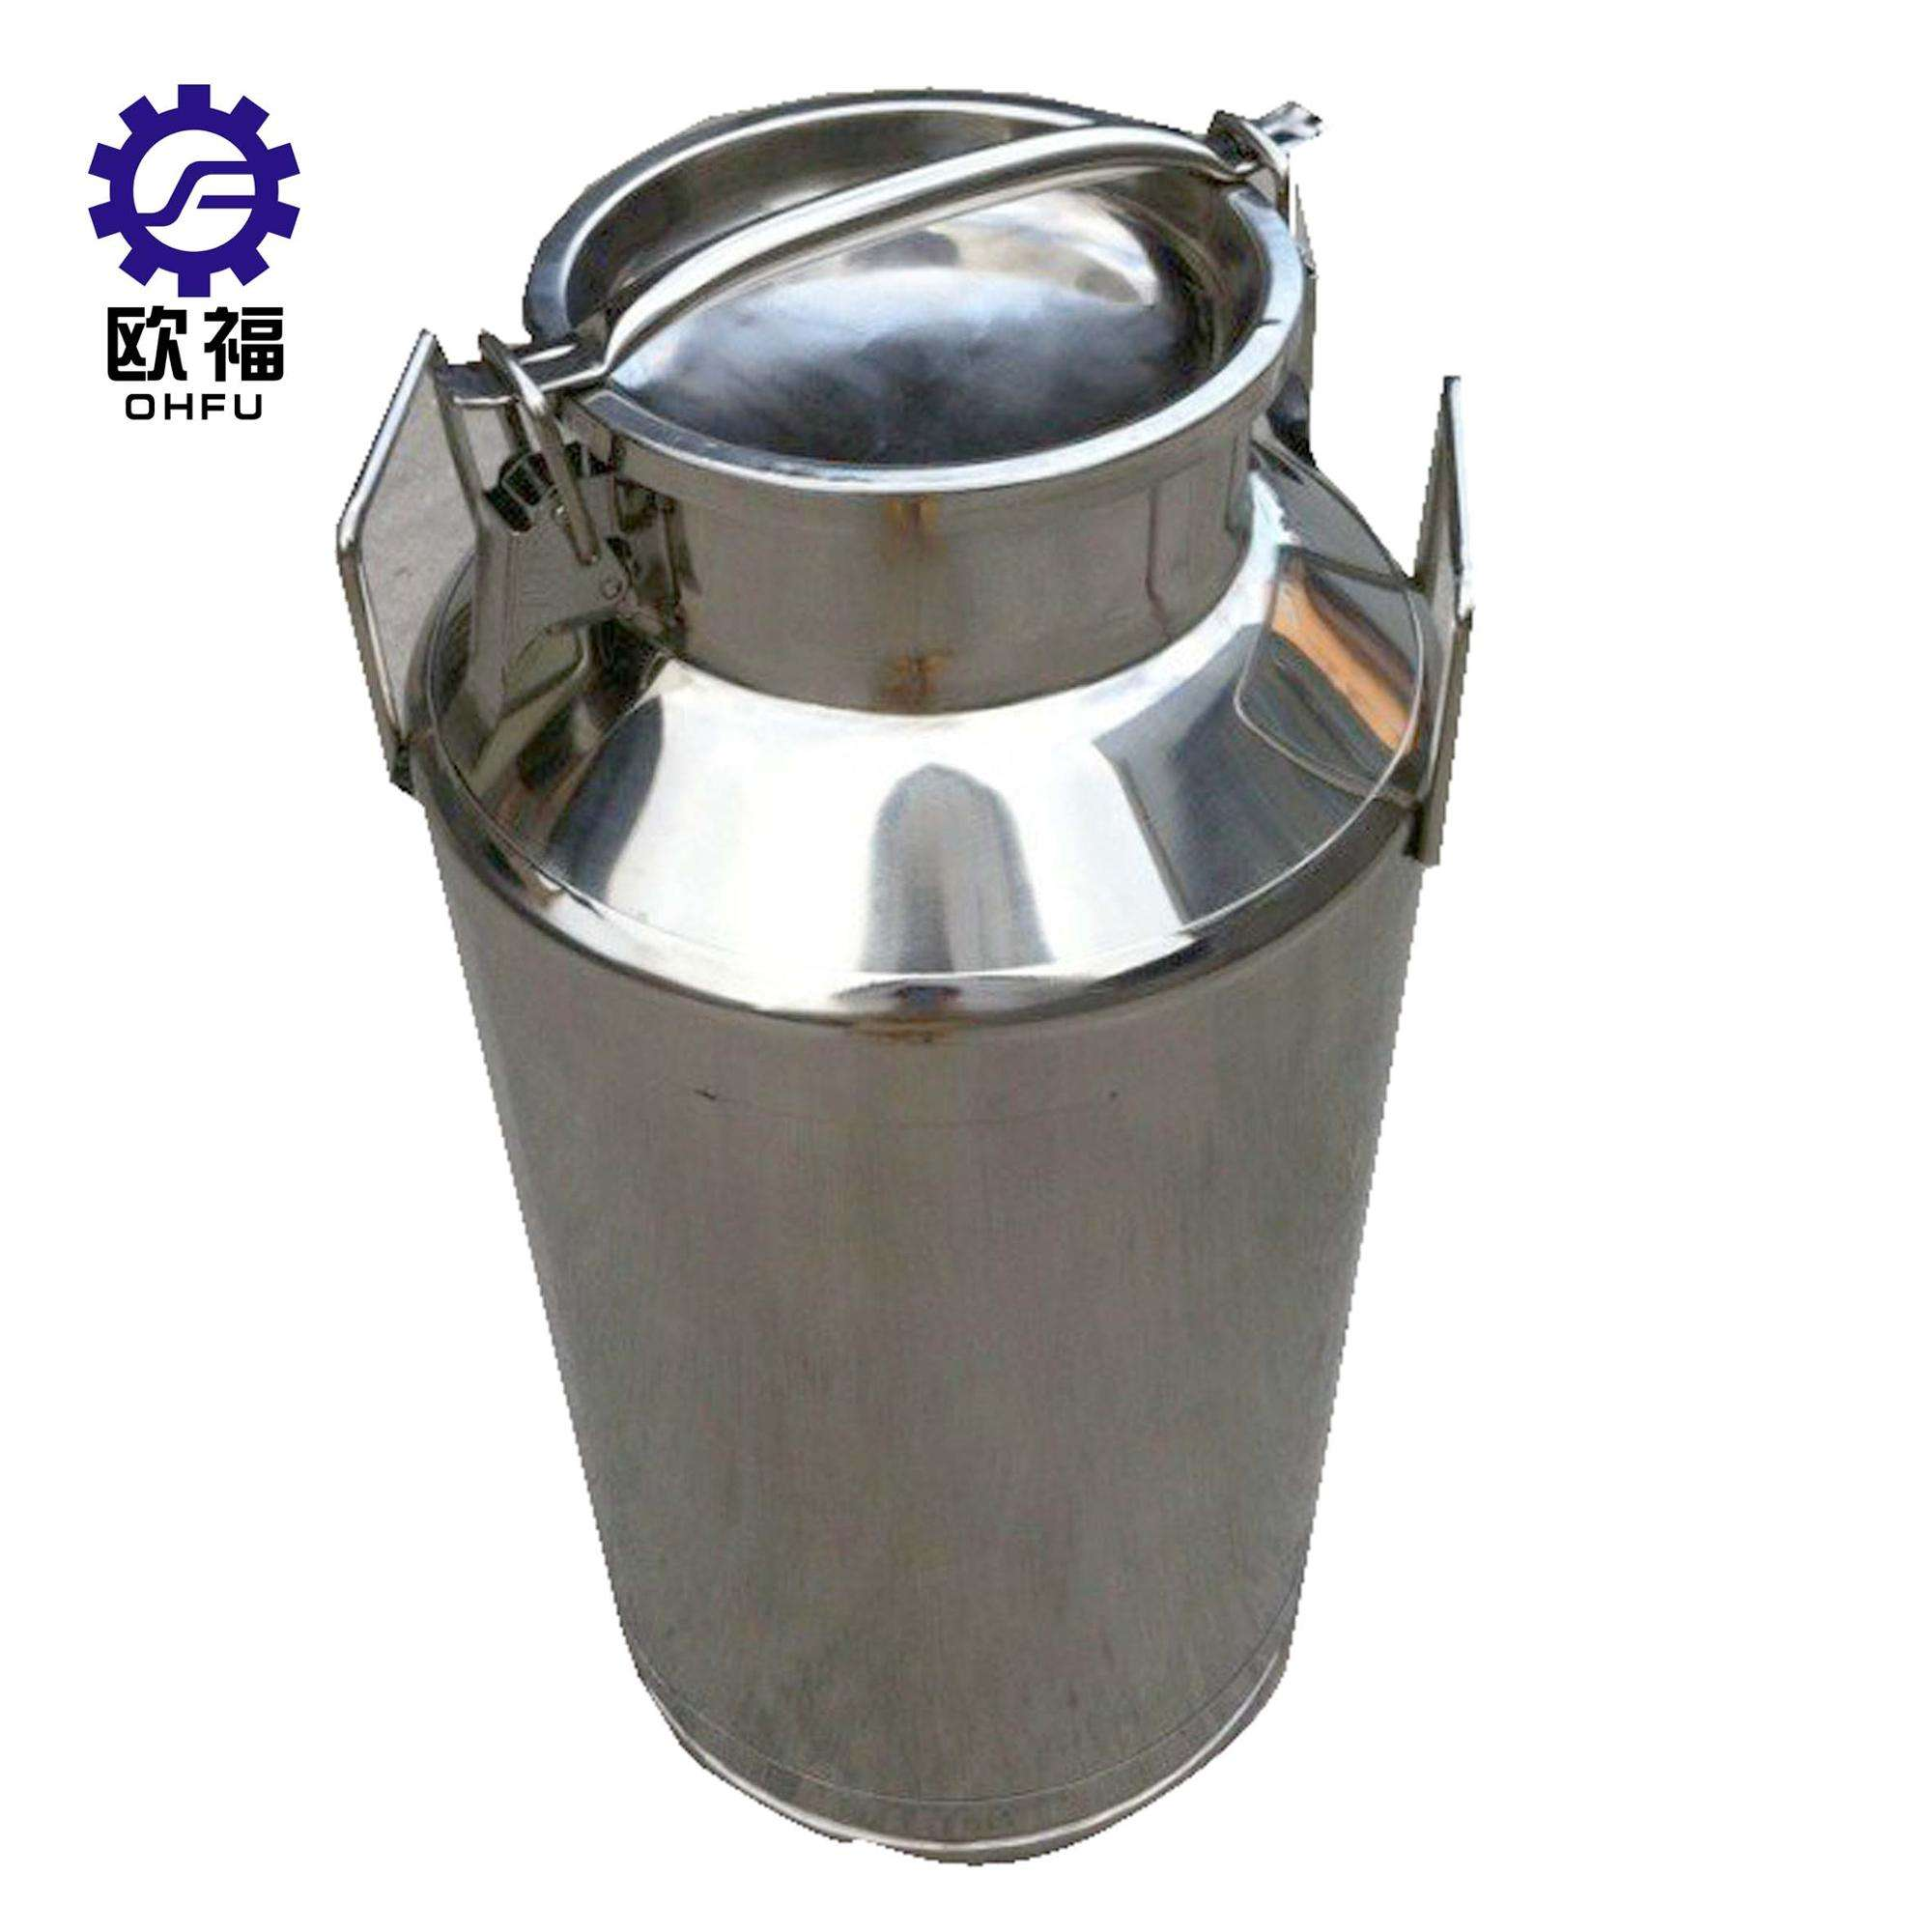 milk cans stainless steel, aluminium milk cans, stainless steel milk churn